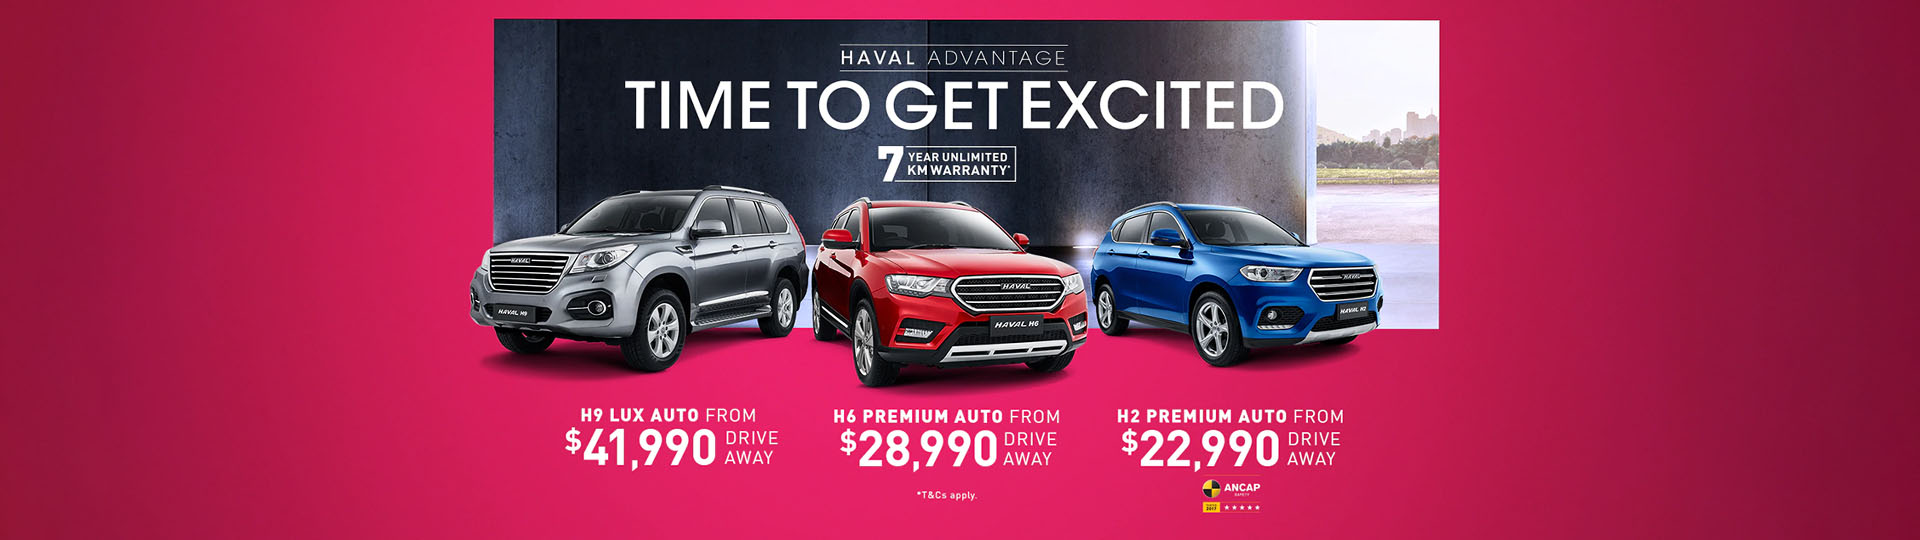 GWM HAVAL Time To Get Excited Offers